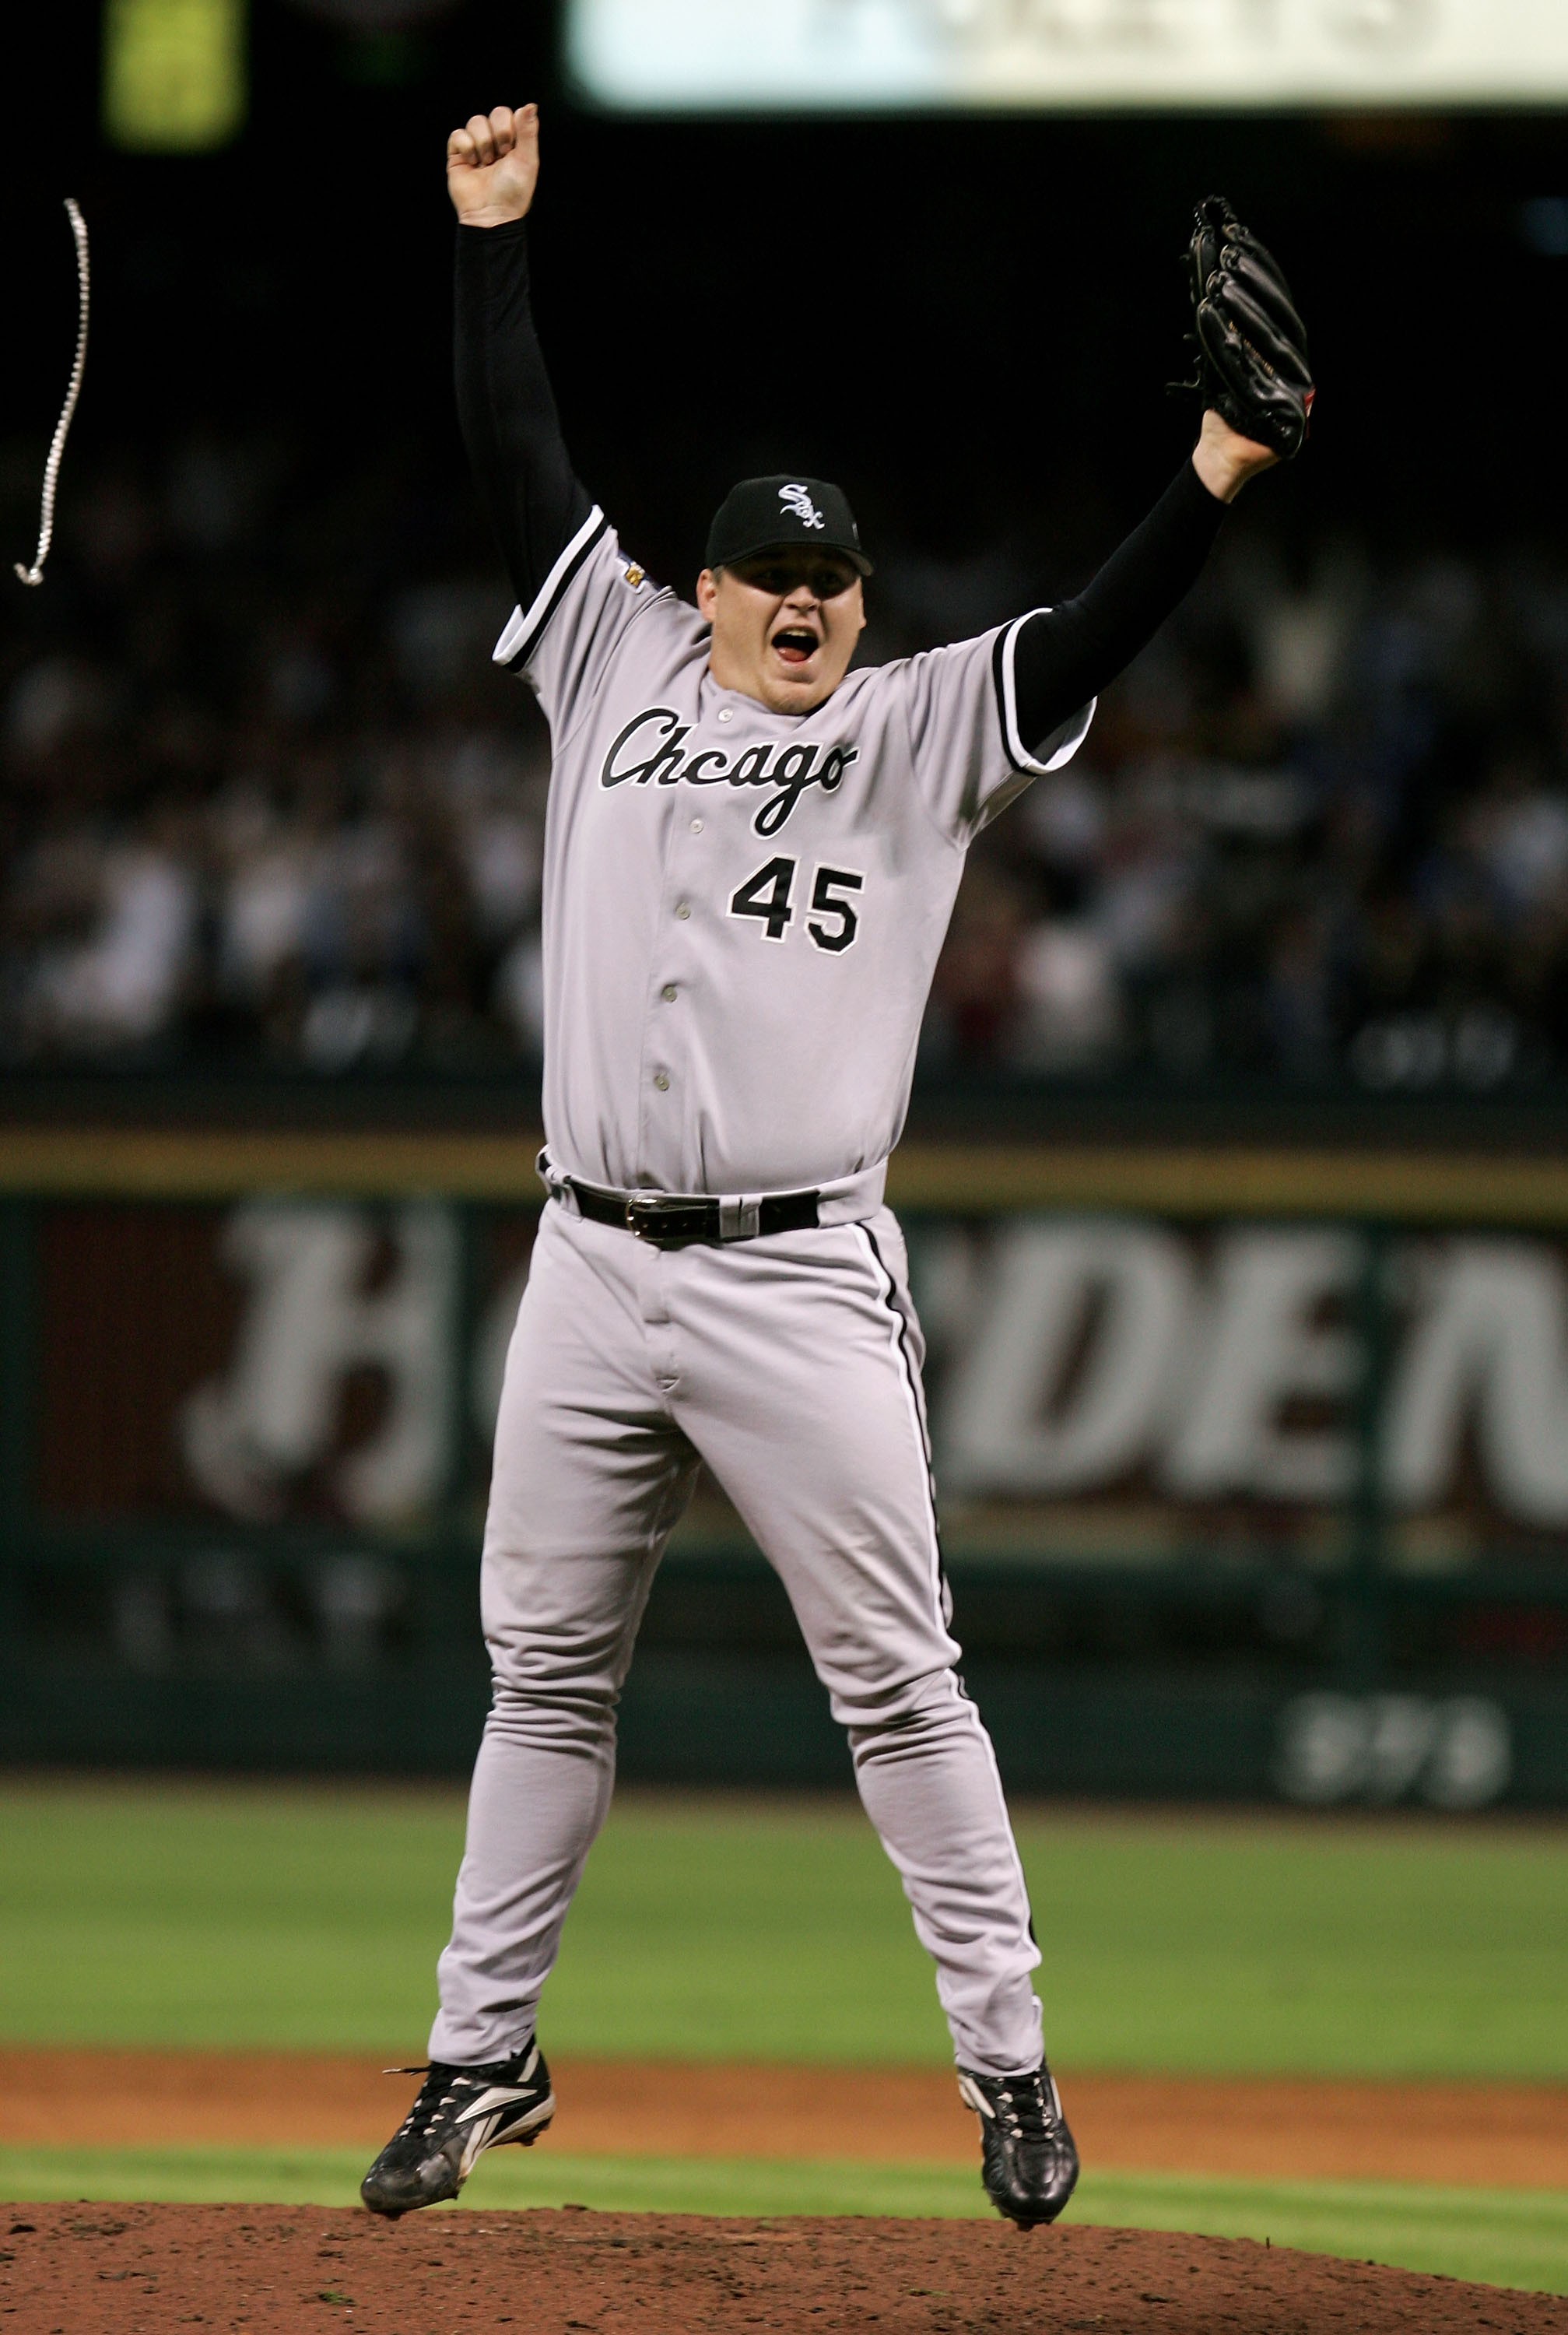 HOUSTON - OCTOBER 26:  Closing pitcher Bobby Jenks #45 of the Chicago White Sox celebrates after winning Game Four of the 2005 Major League Baseball World Series against the Houston Astros at Minute Maid Park on October 26, 2005 in Houston, Texas. The Chi